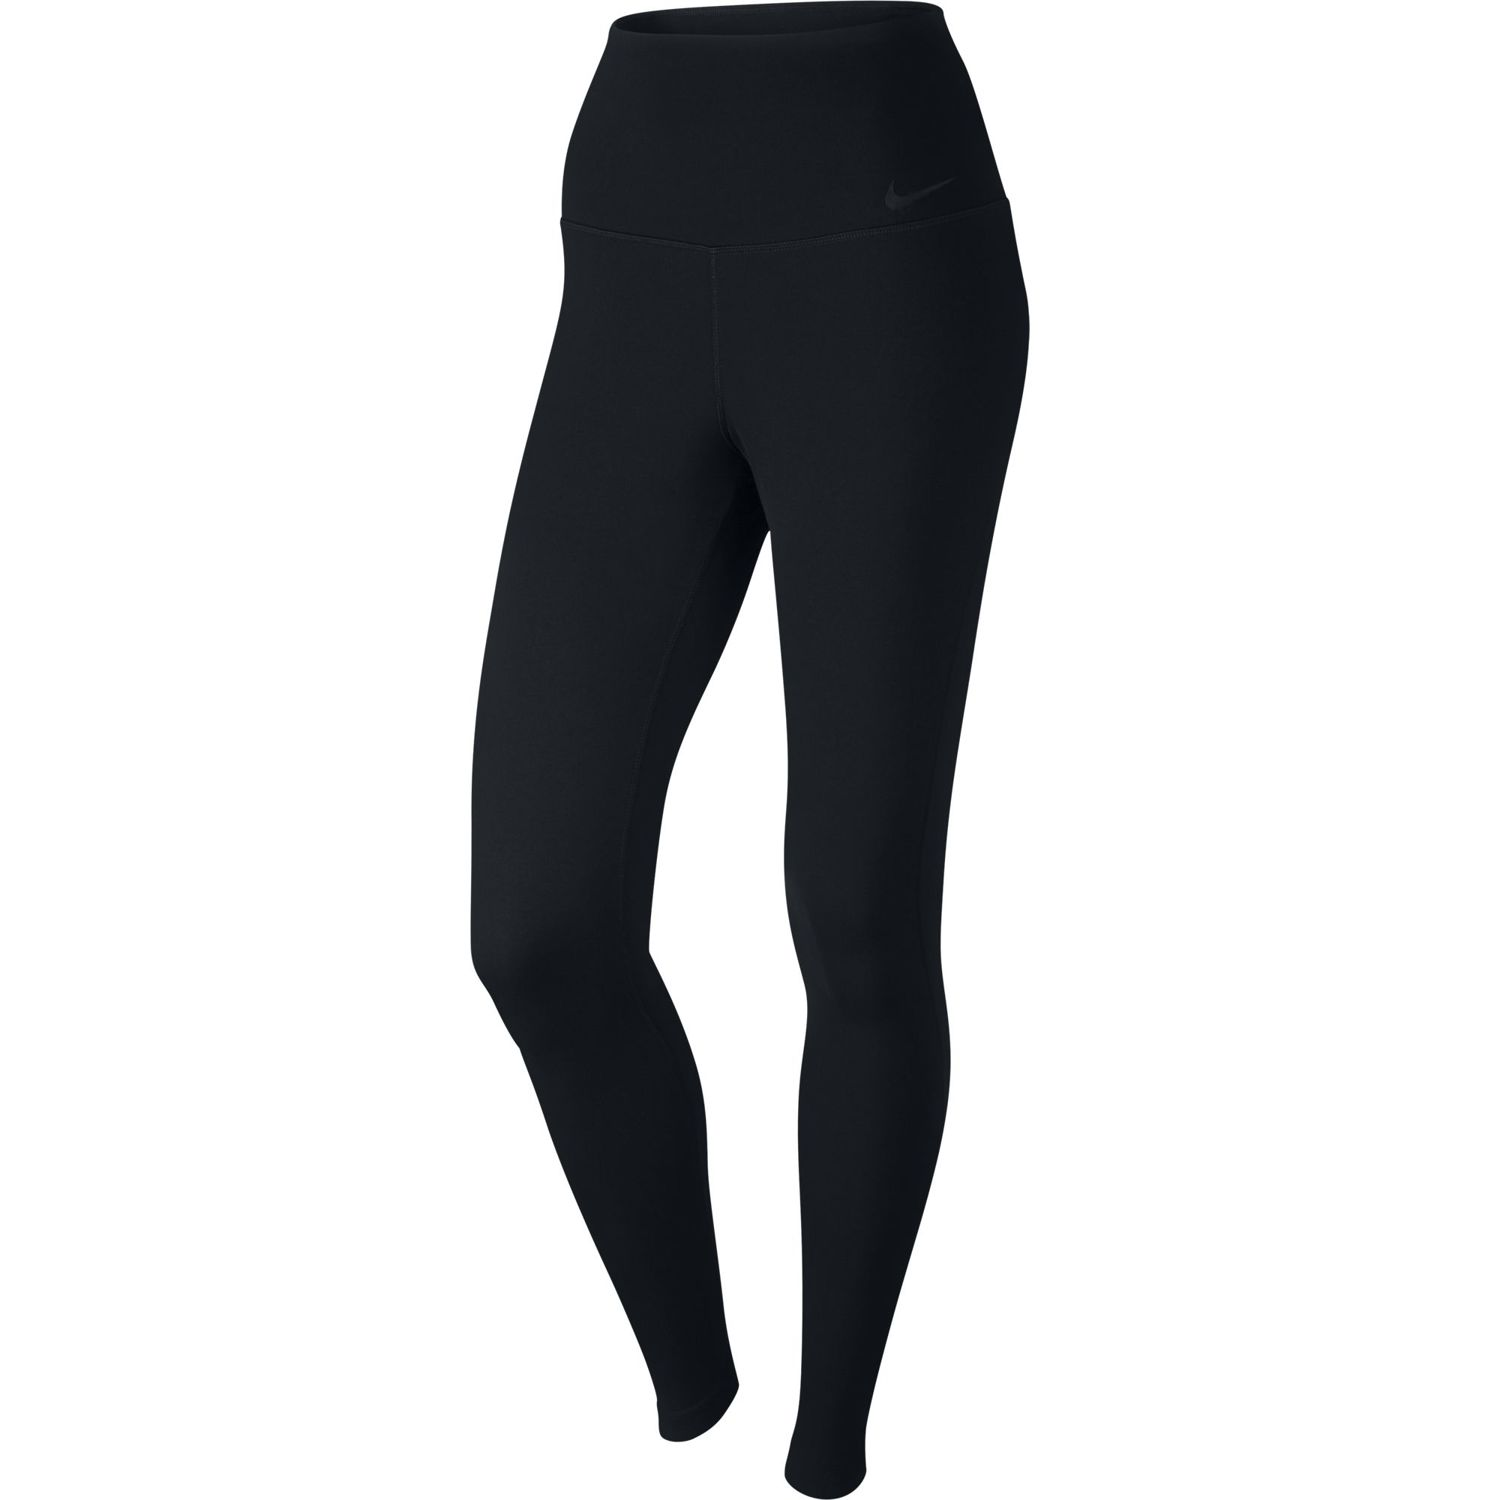 Legginsy sportowe Nike Power Legendary 822933 010